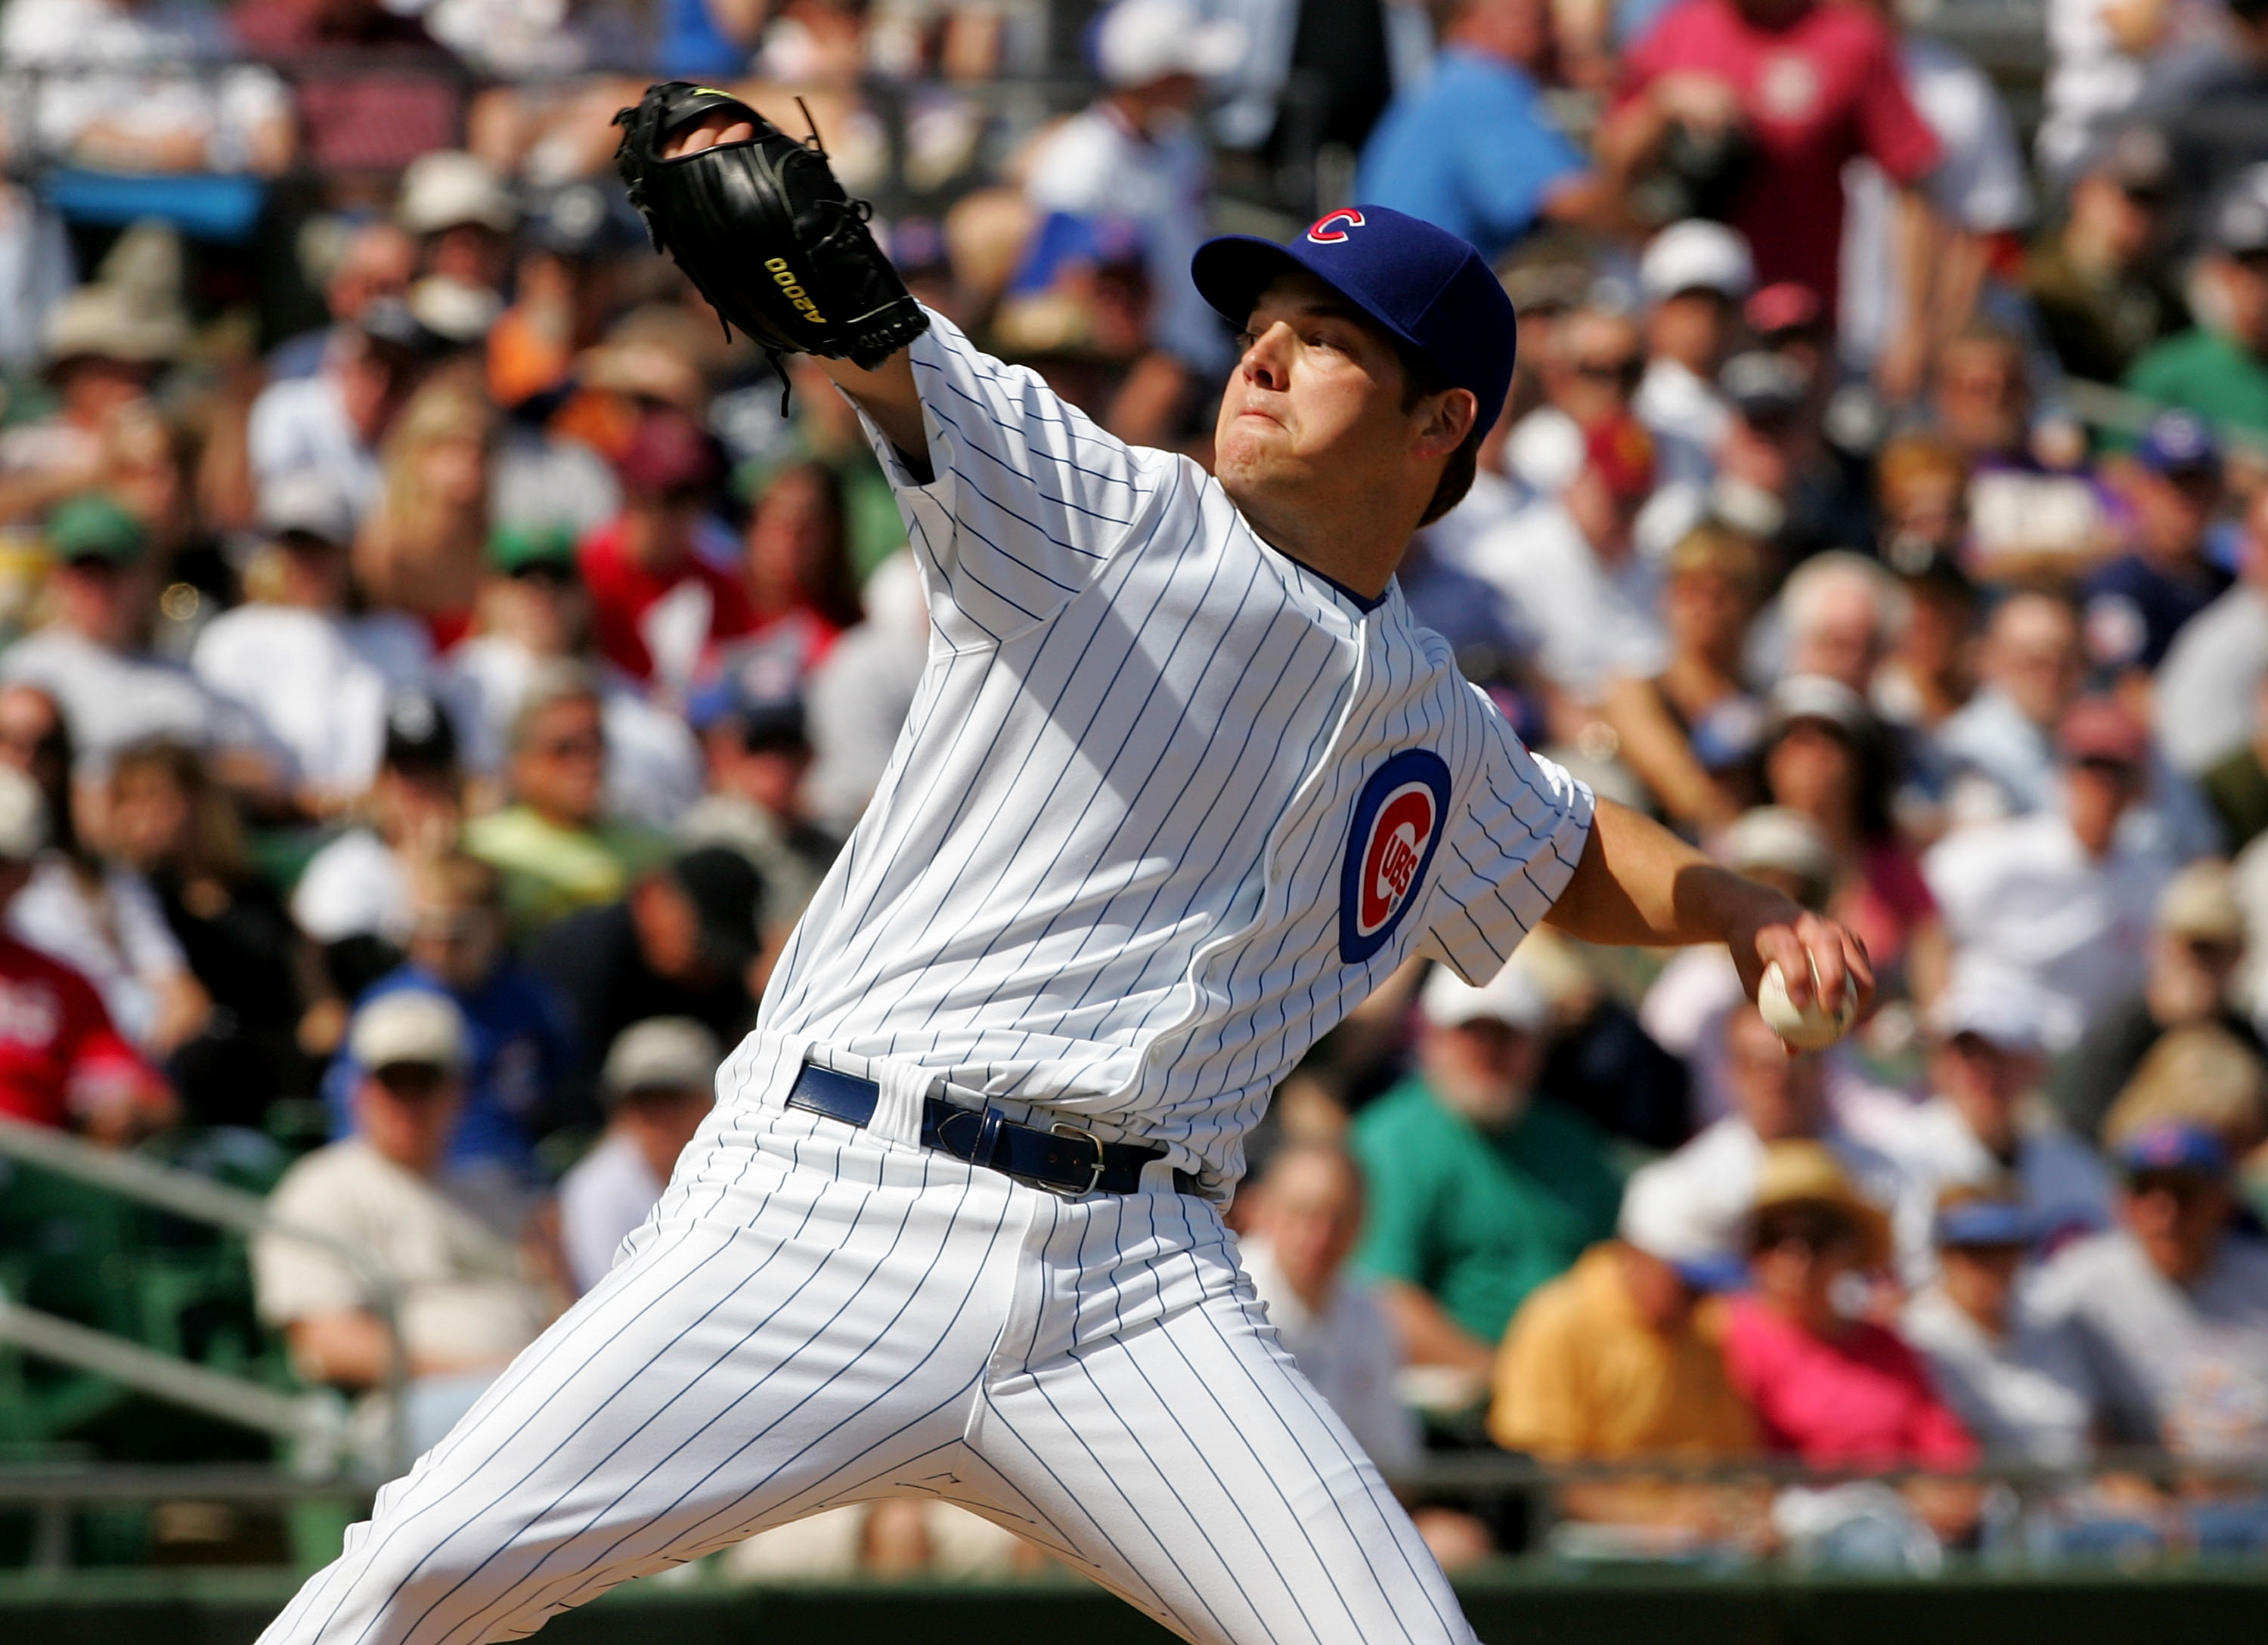 MESA, AZ - MARCH 4:  Pitcher Rich Hill #53 of the Chicago Cubs throws a pitch against the Chicago White Sox during Spring Training at Hohokam Park March 4, 2007 in Mesa, Arizona. (Photo by Stephen Dunn/Getty Images)